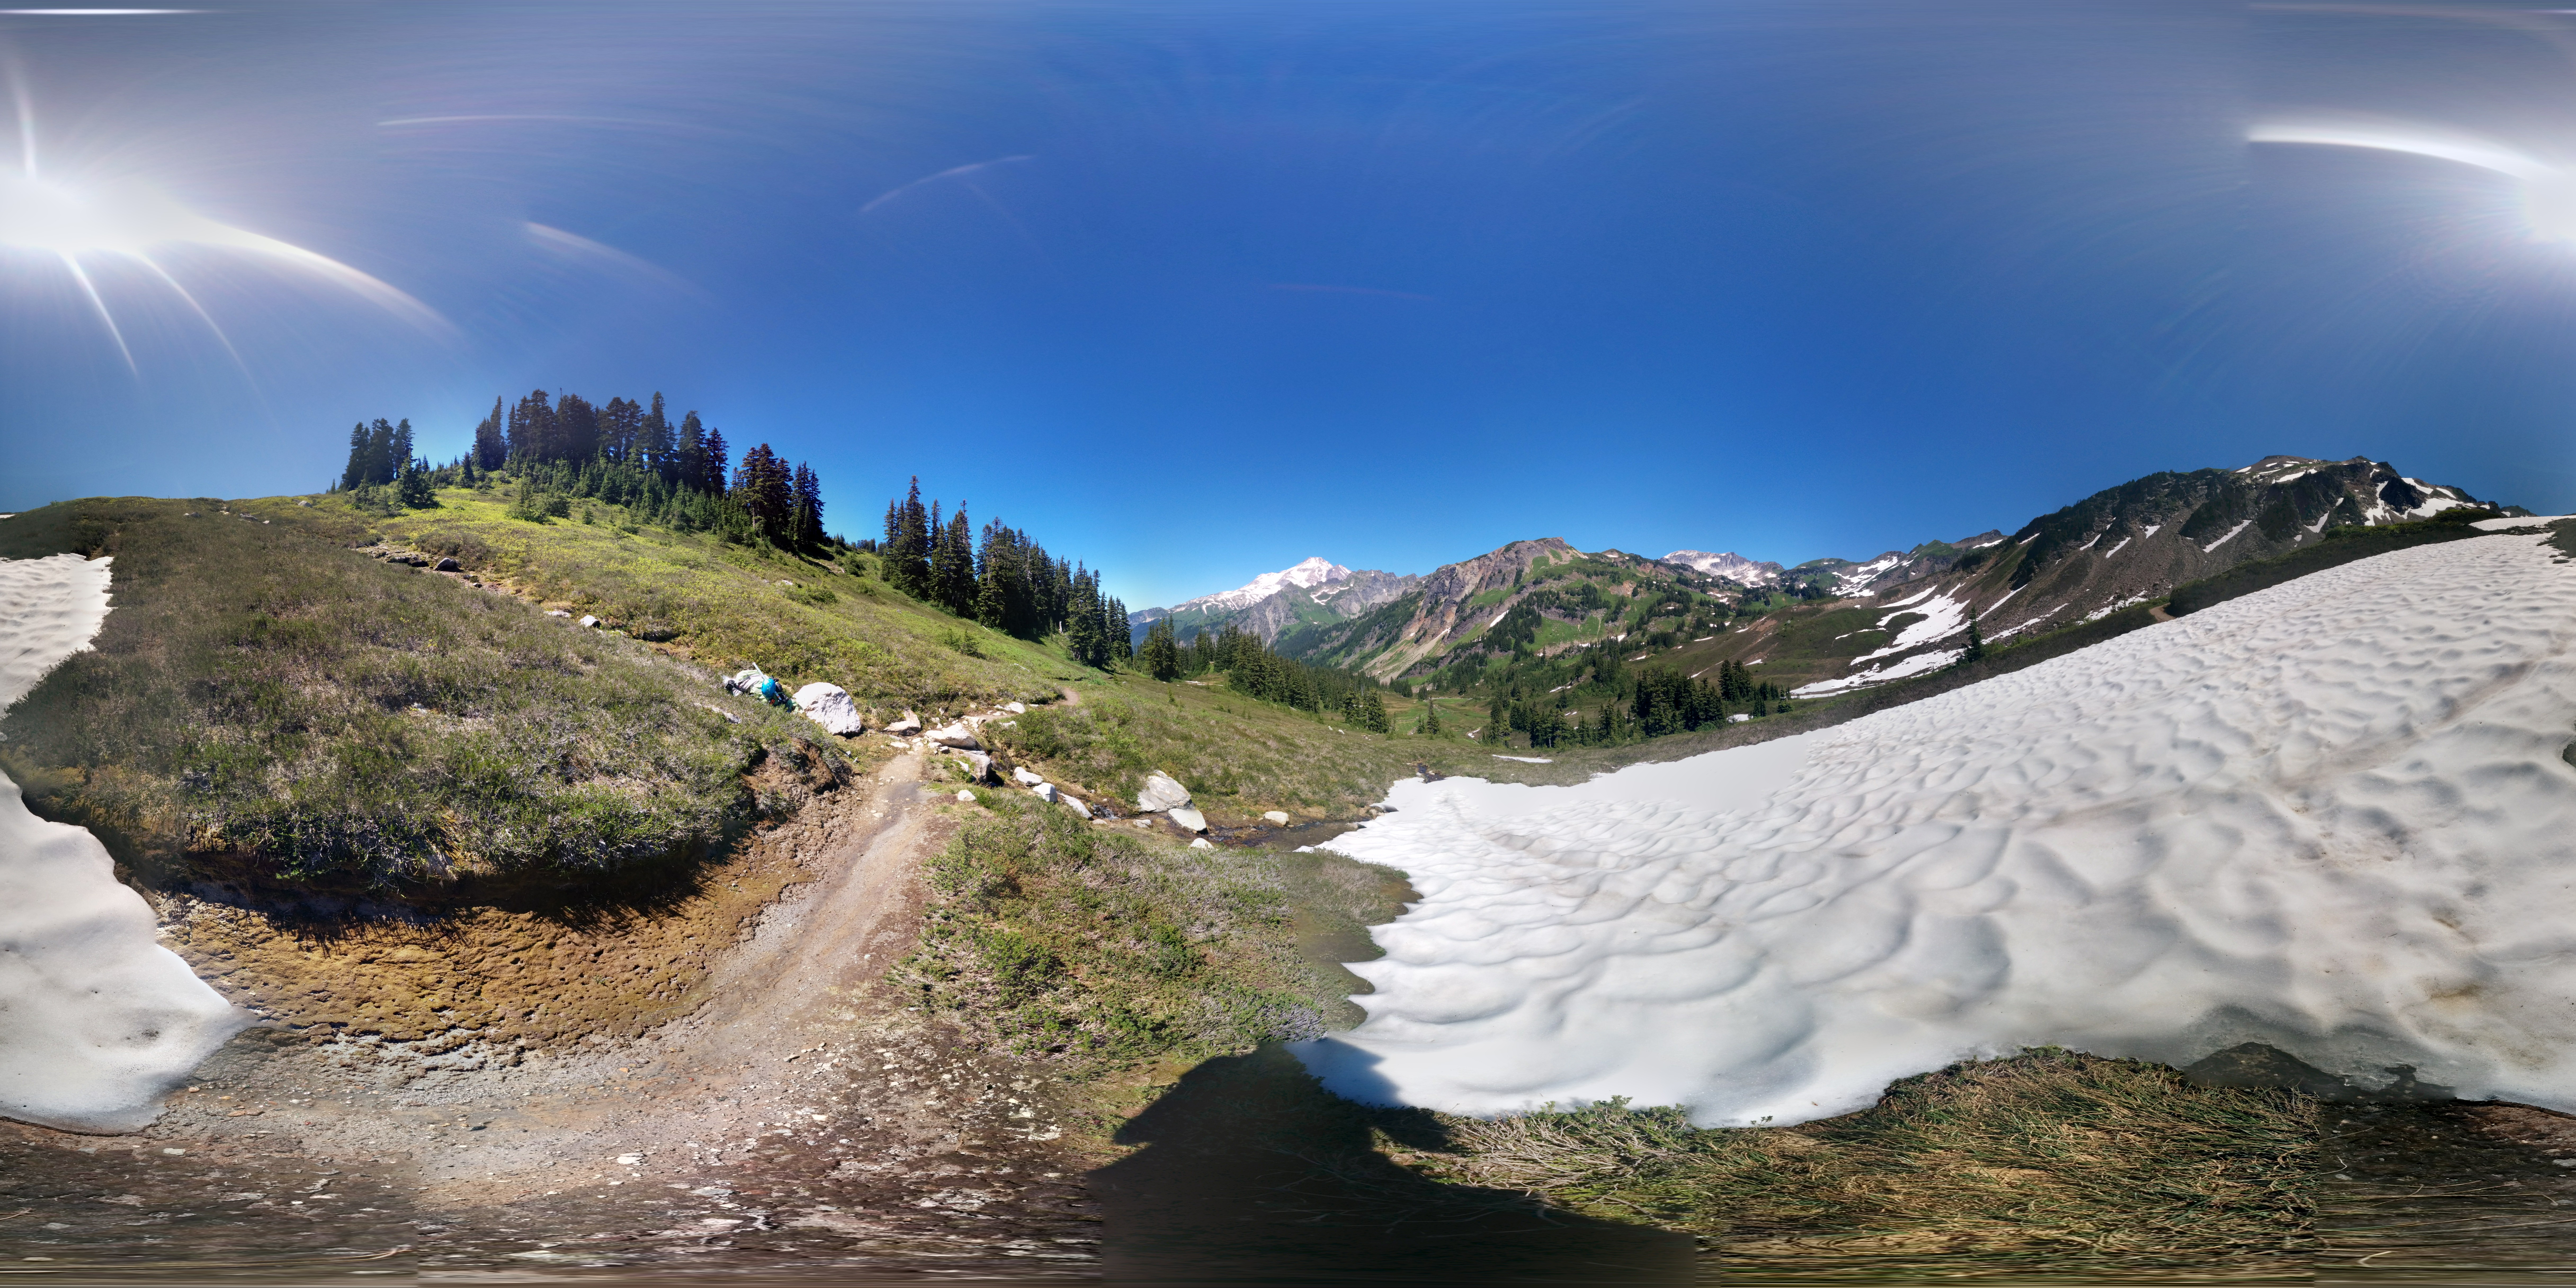 Photo: Was this a perfect lunch spot or what? #photosphere #mountains